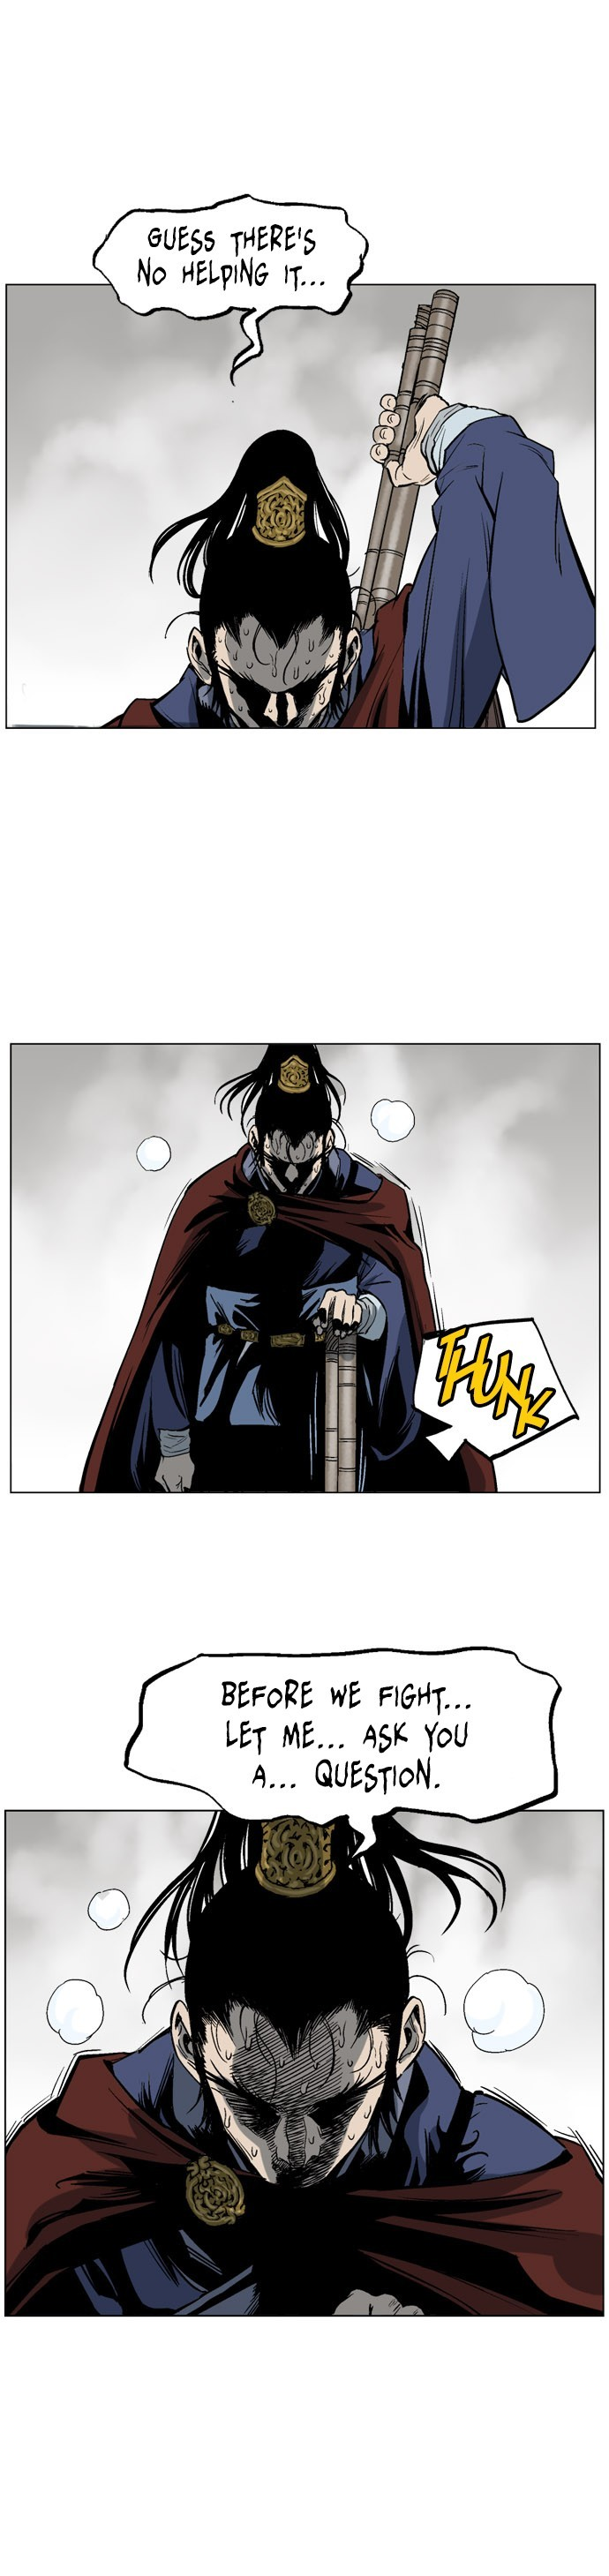 Gosu (The Master) - Chapter 39